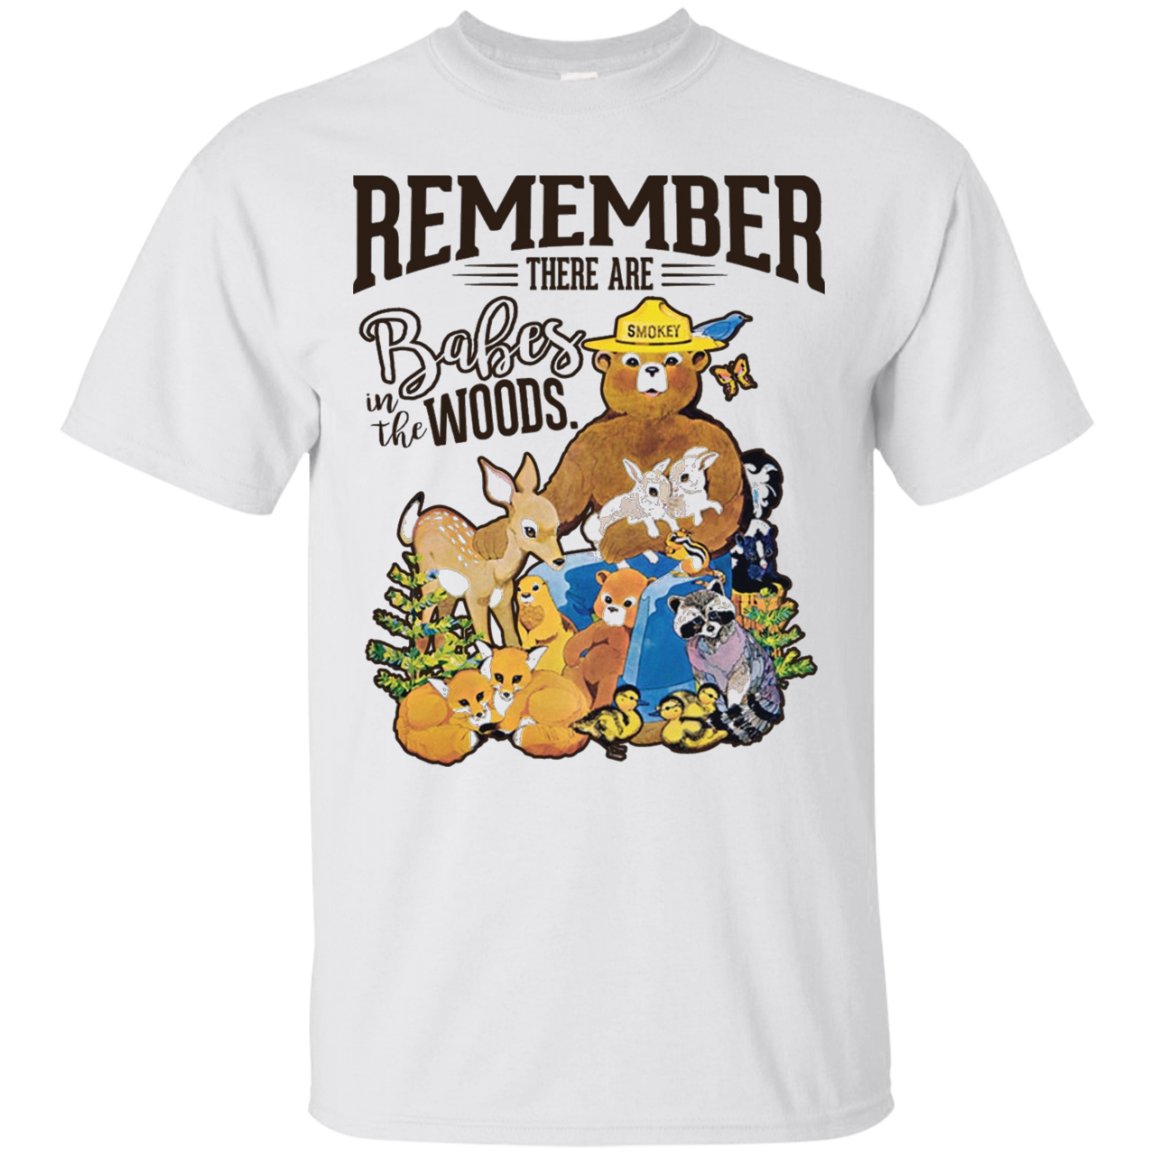 REMEMBER THERE ARE BABES IN THE WOODS Tees Smokey bear - T-Shirt